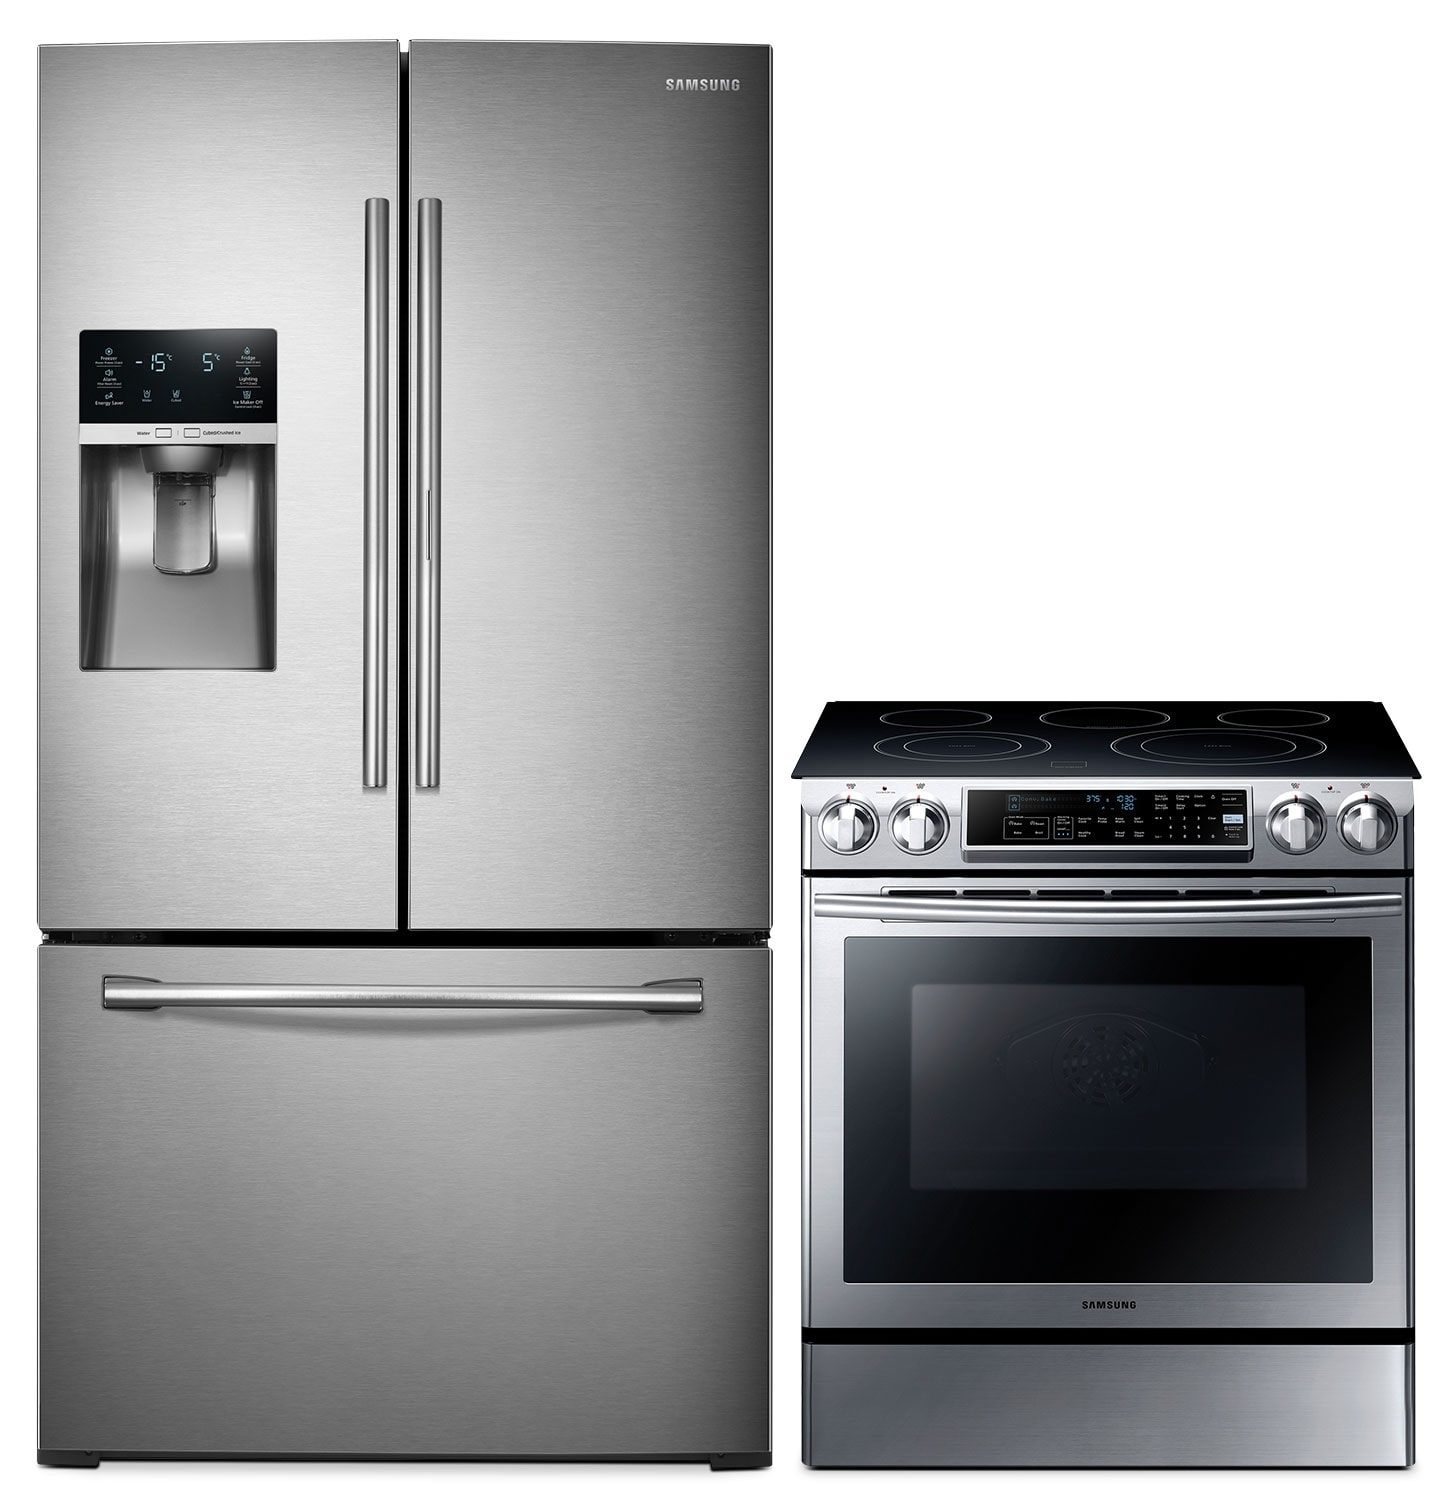 Samsung® 28 Cu. Ft. 3-Door Refrigerator and 5.8 Cu. Ft. Slide-In Electric Range Package